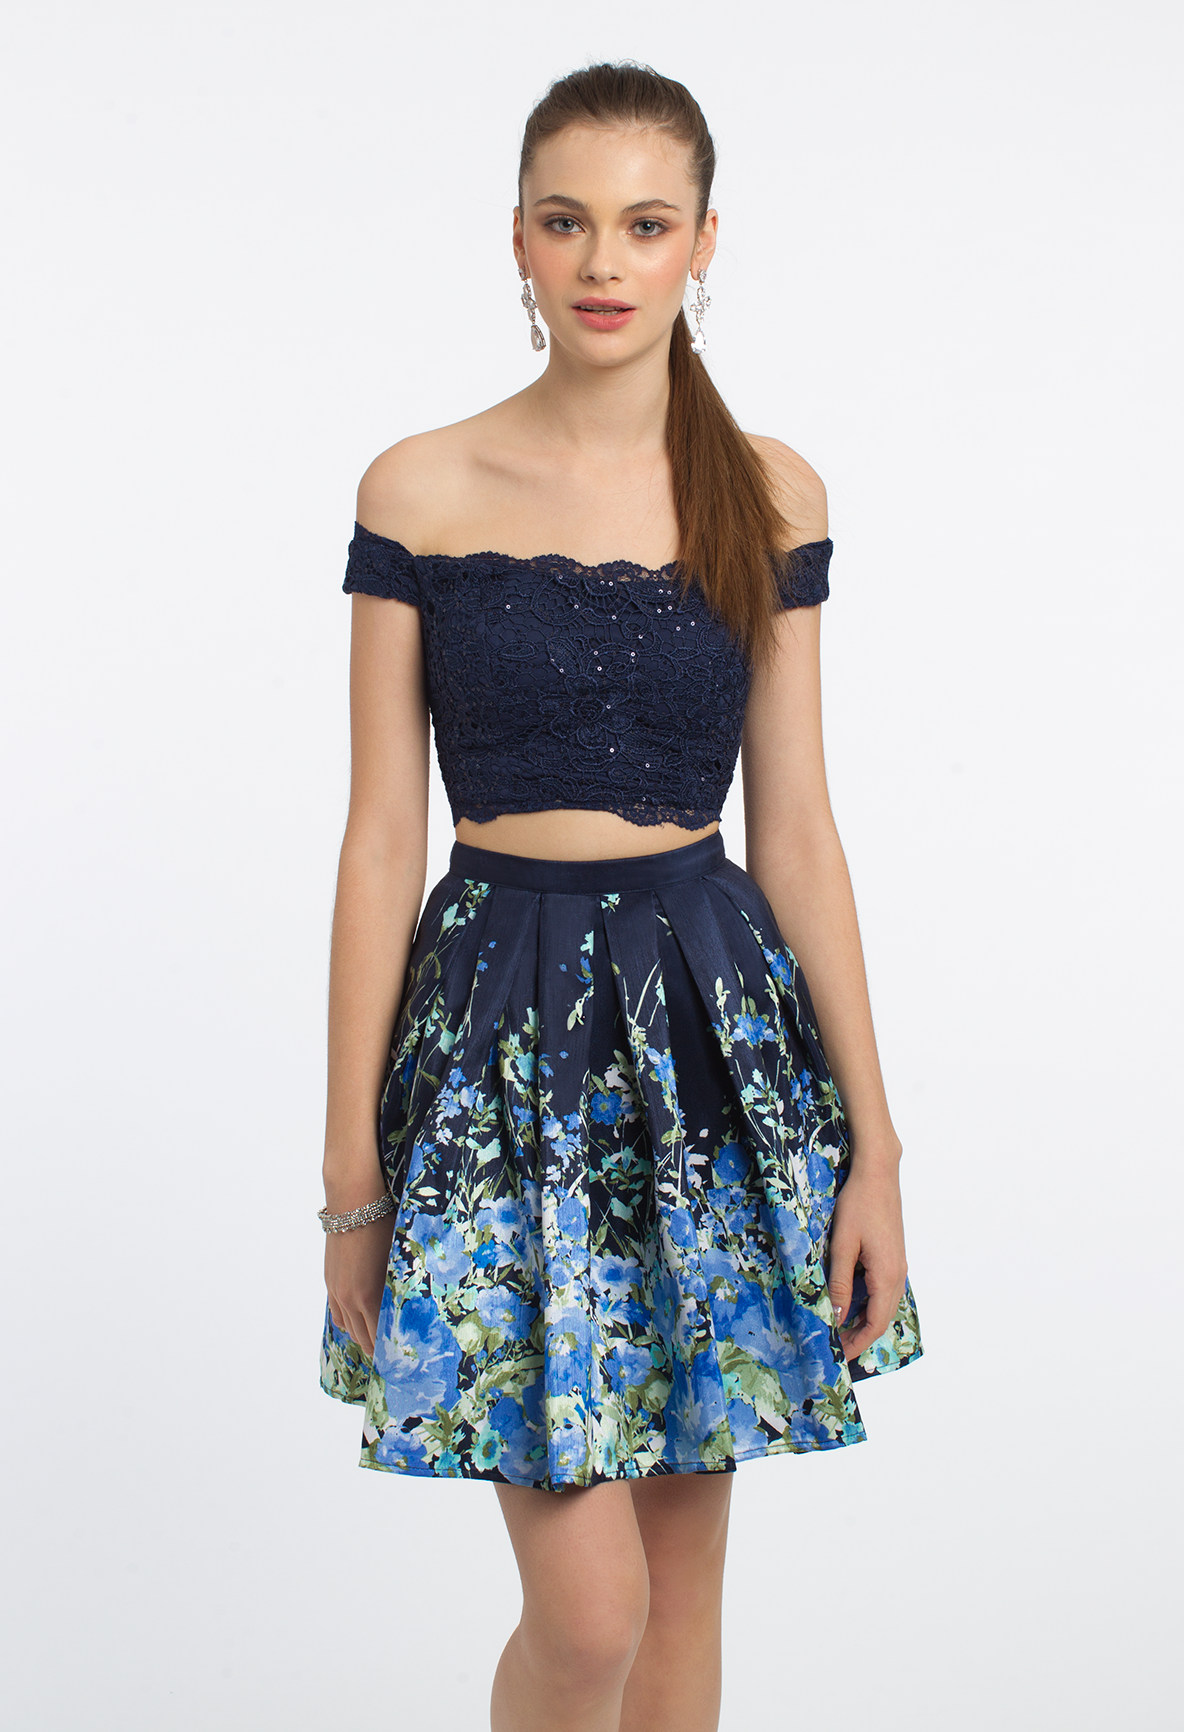 Take a twirl in this adorable party dress! The two piece style, lace off the shoulder crop top, and floral fit and flare skirt make this short cocktail dress too cute for an outdoor celebration. #camillelavie